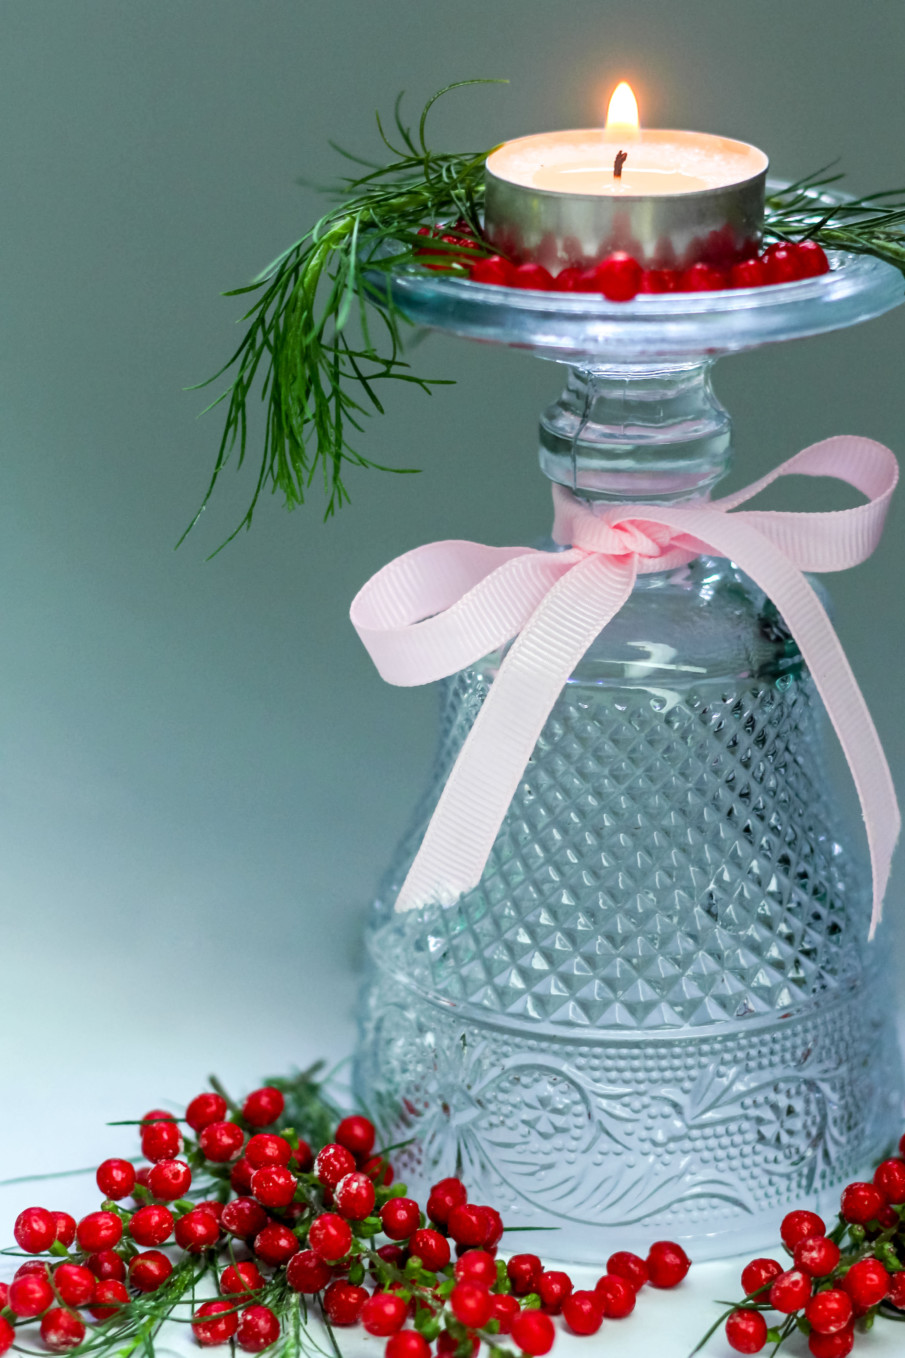 Centerpieces with candles idea using glass bottle, tealight candles, and red berries